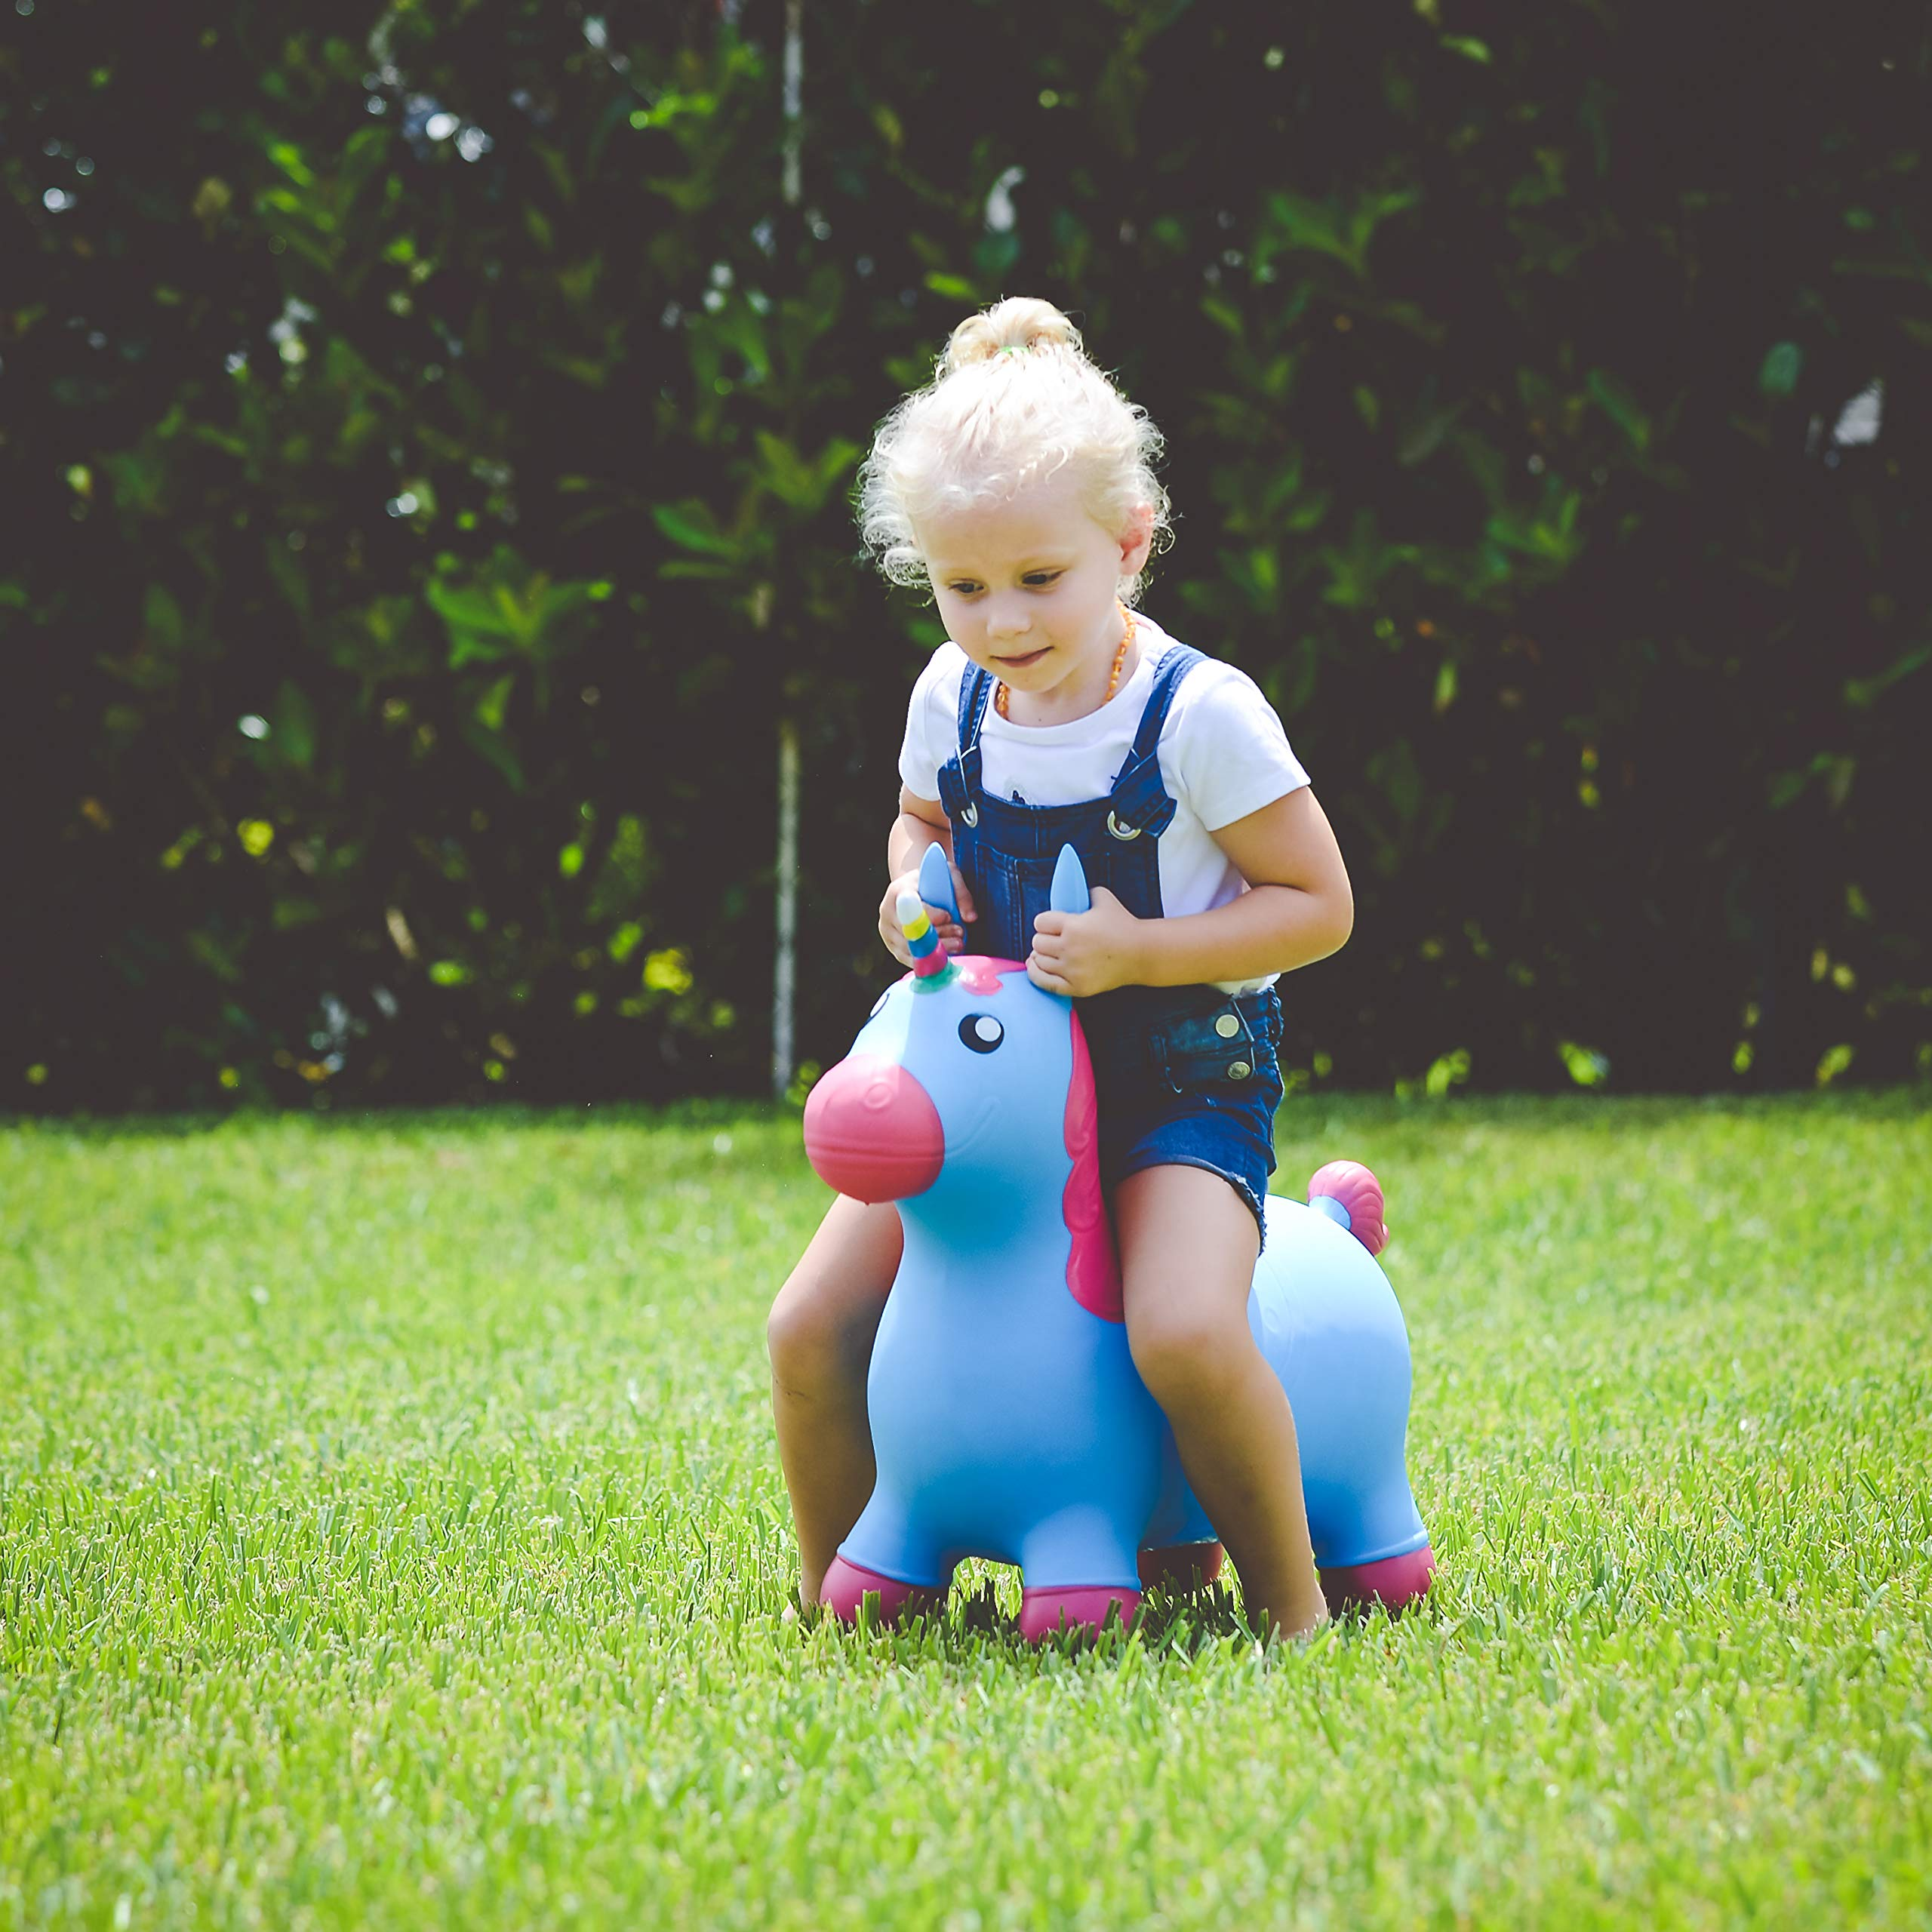 Kiddie Play Hopper Ball Unicorn Inflatable Hoppity Hop Bouncy Horse Toy (Pump Included) by Kiddie Play (Image #6)